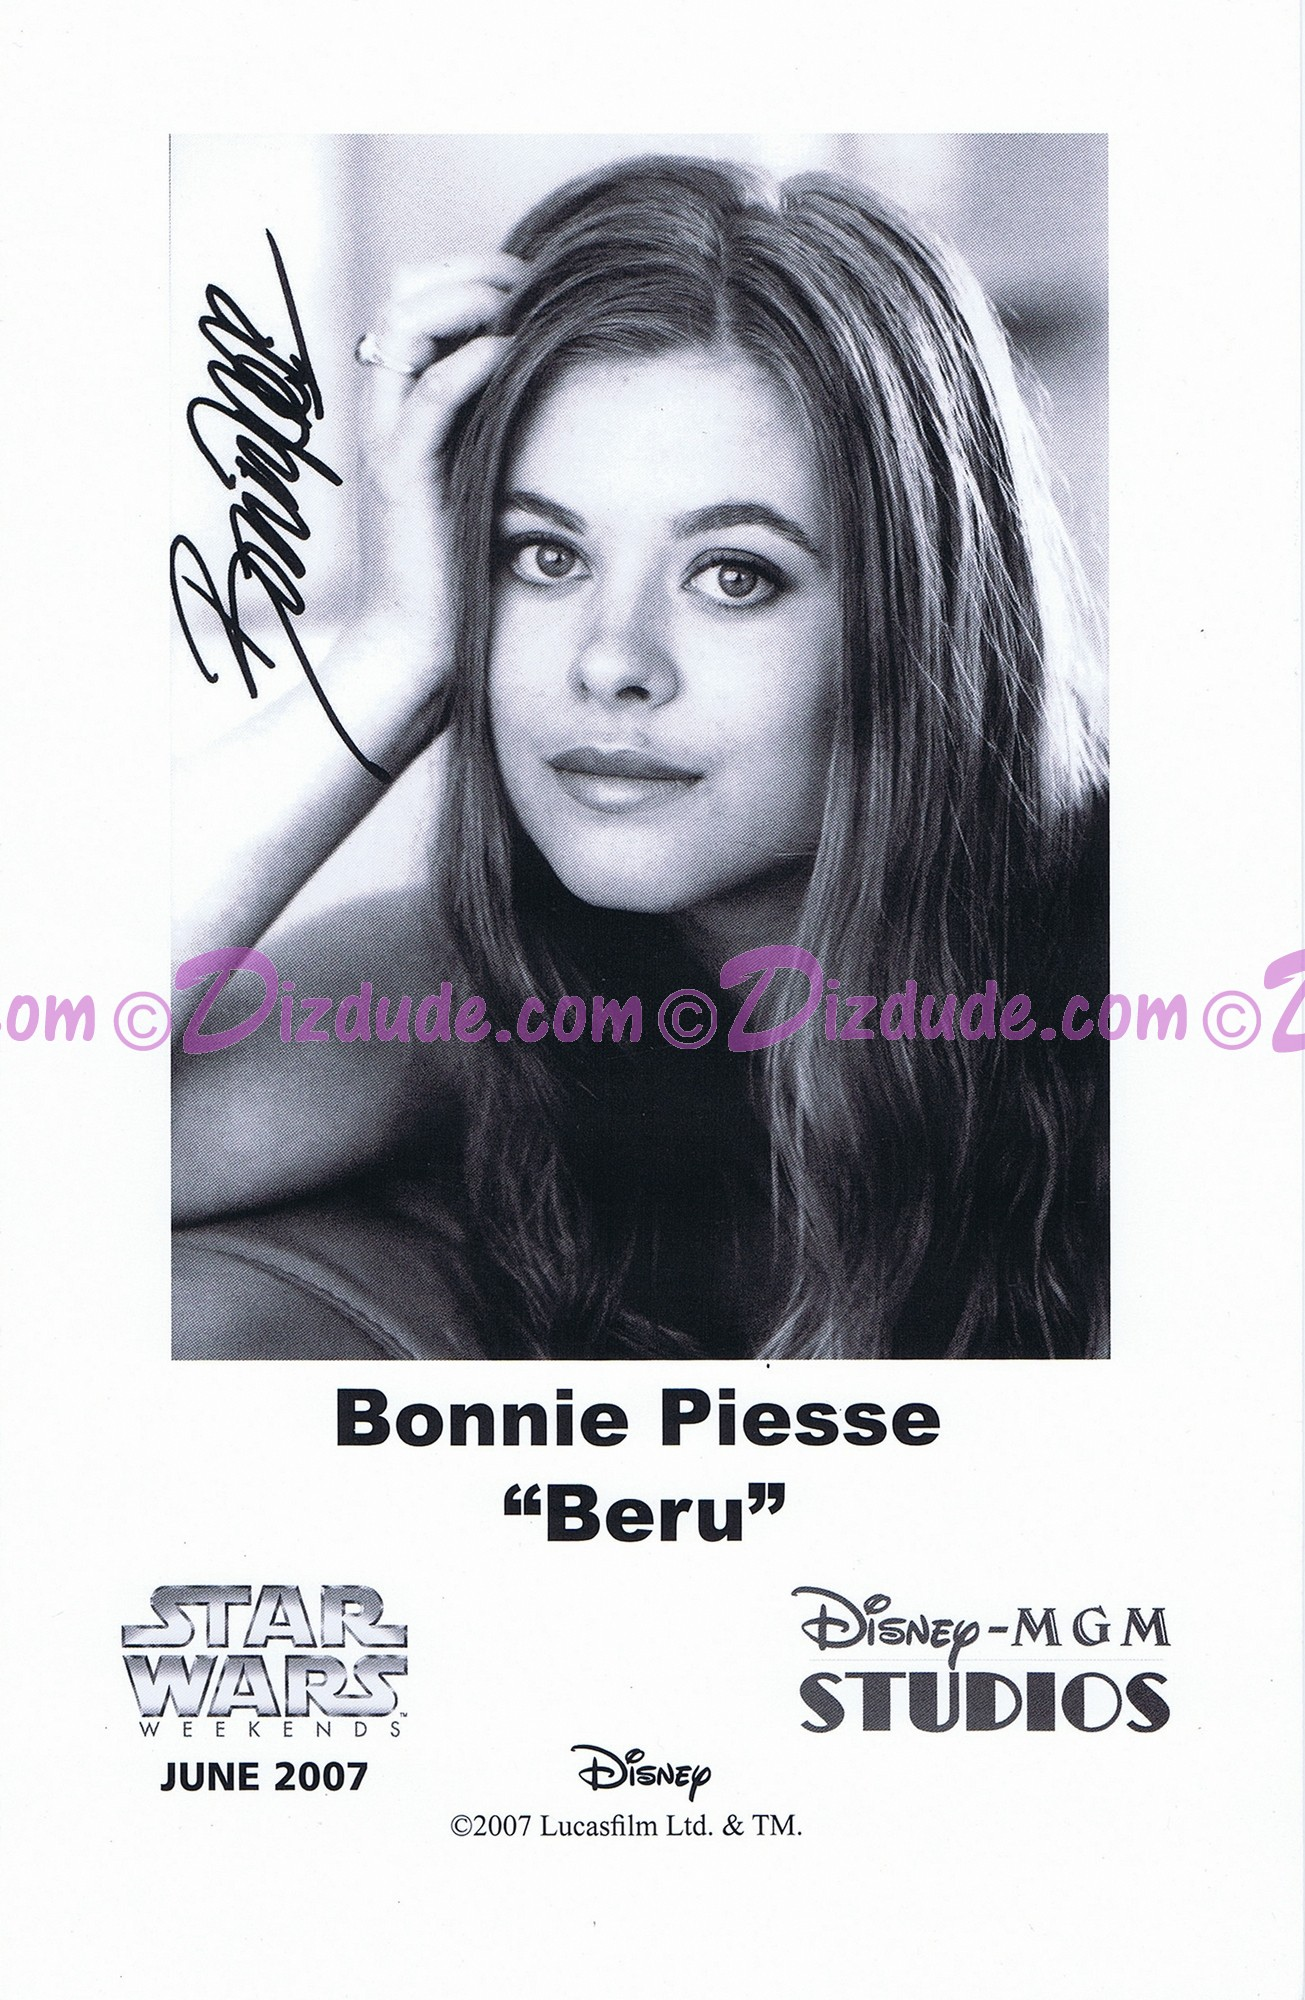 Bonnie Piesse who played Beru Presigned Official Star Wars Weekends 2007 Celebrity Collector Photo